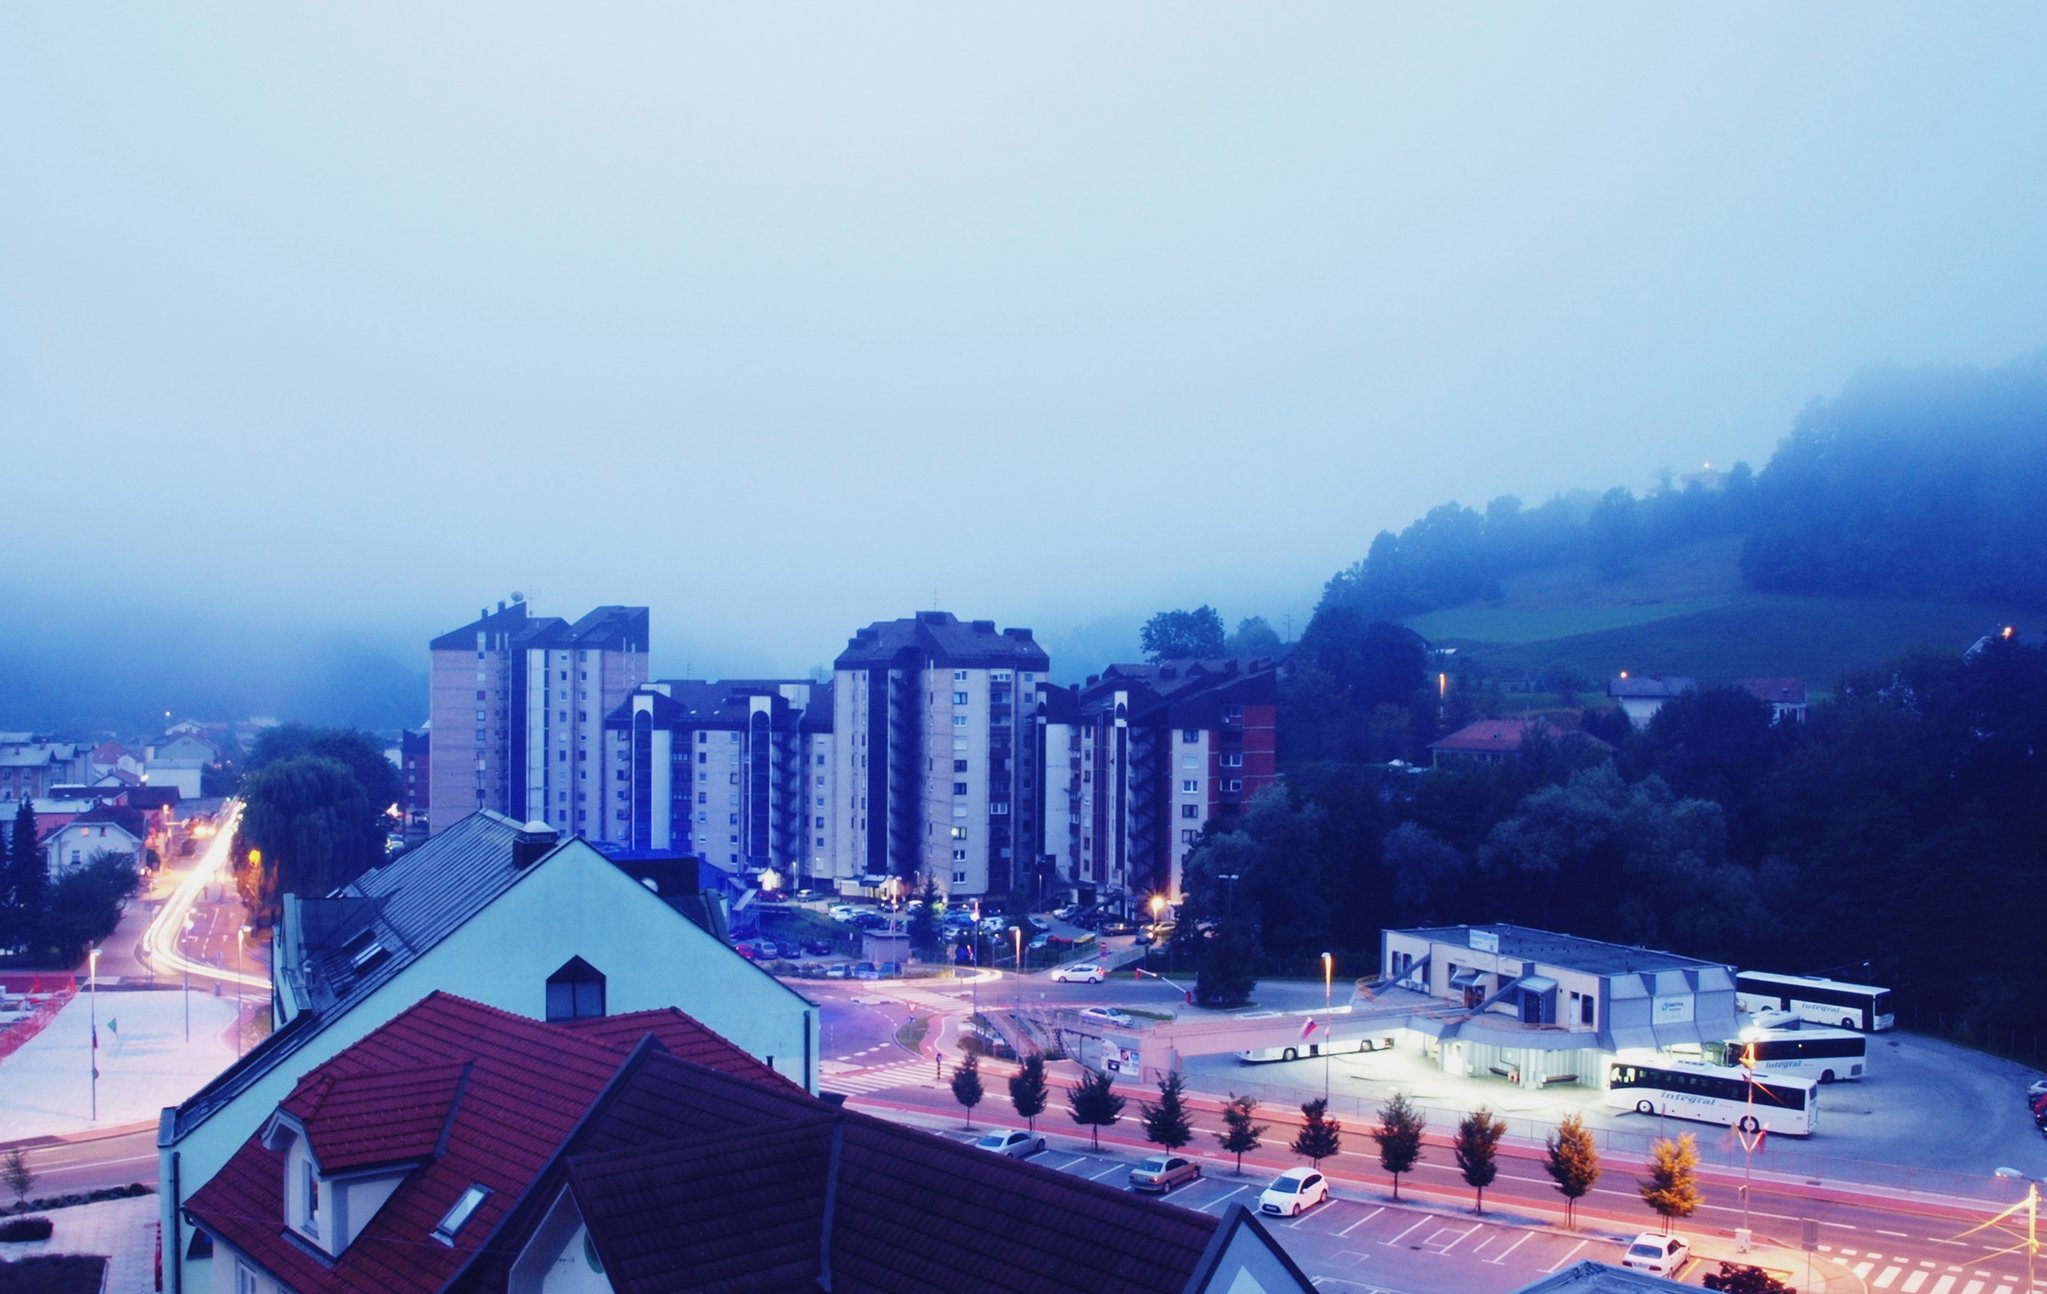 Morning view from my balcony, 5.30 am (: